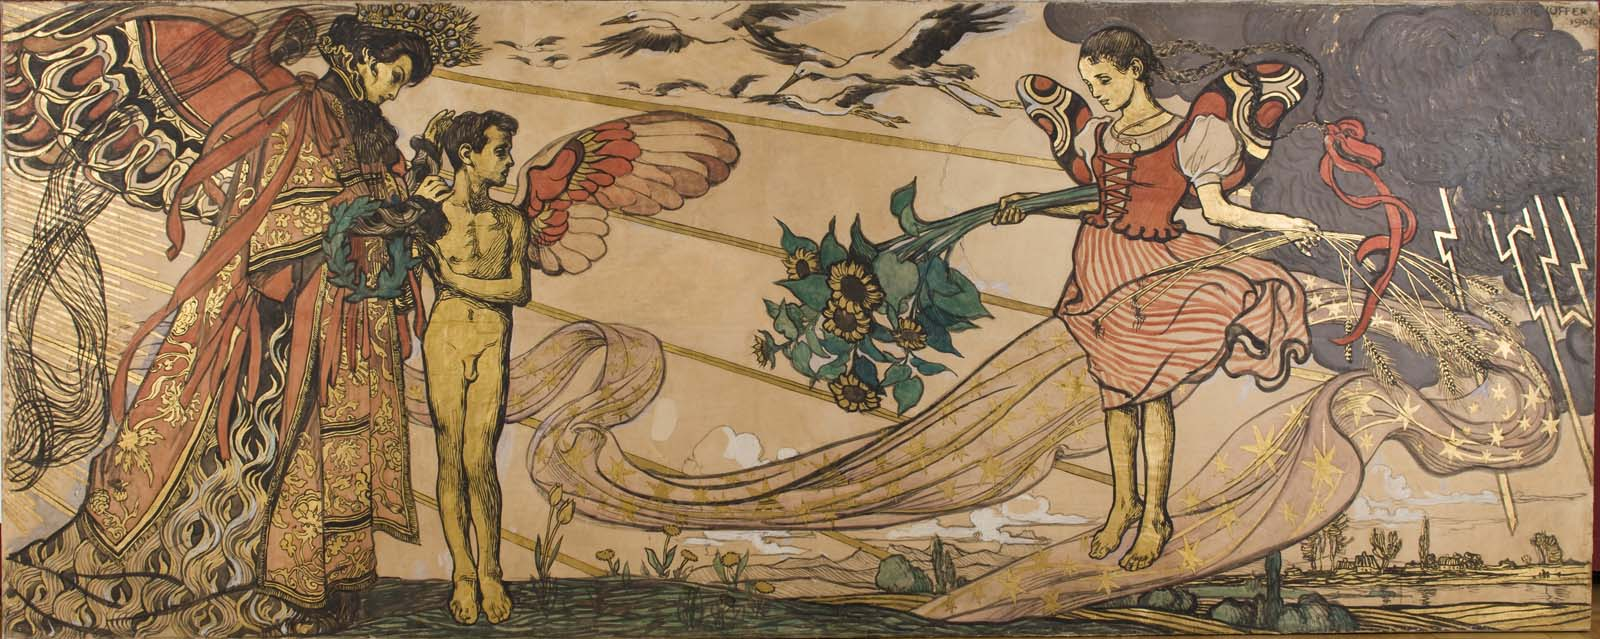 print showing a queen like figure next to a cherub both lookimng towards a gild floaing above landscape with a bouquetof sunflowers